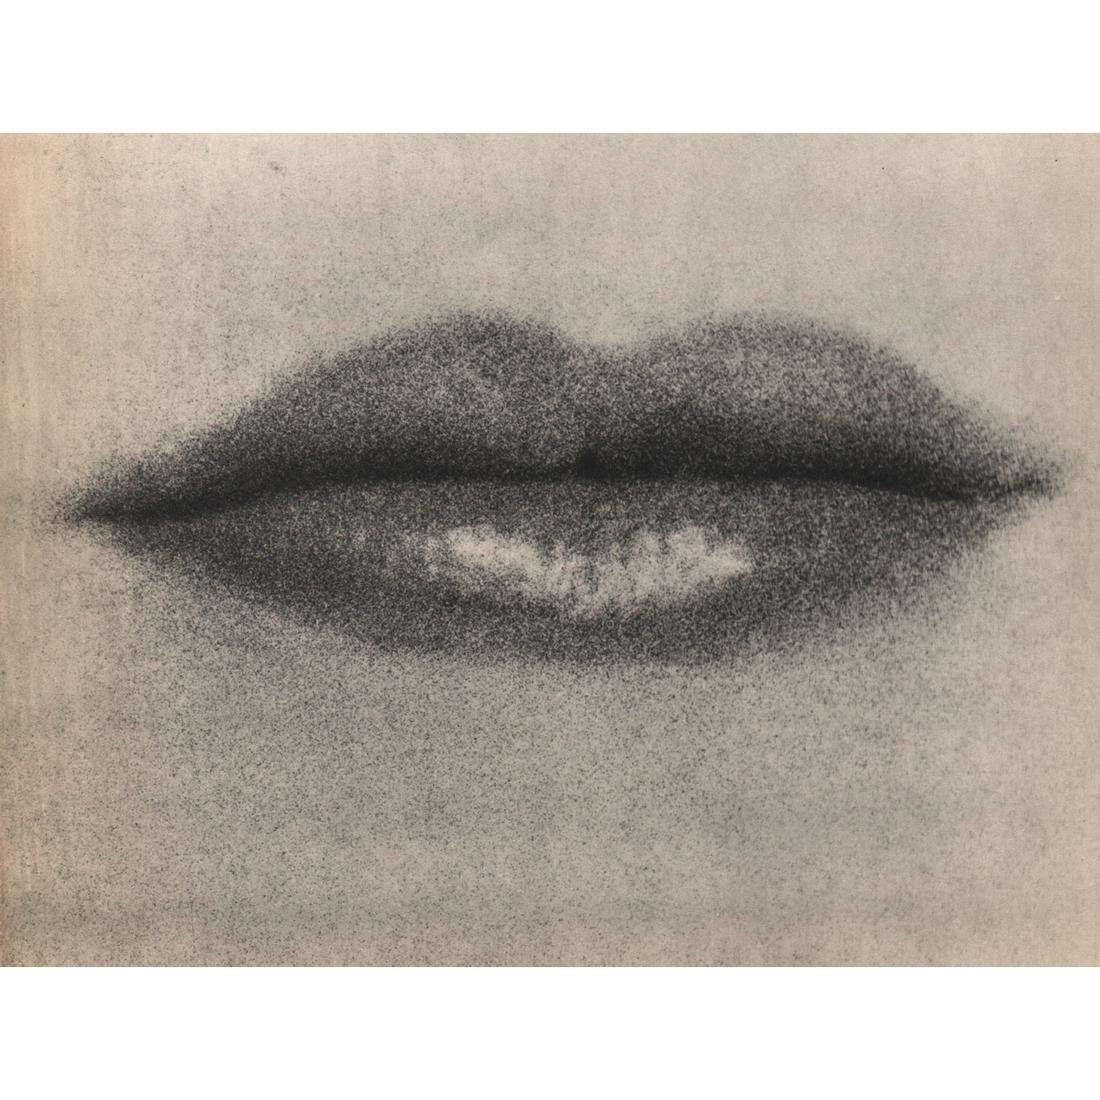 MAN RAY -  Lips